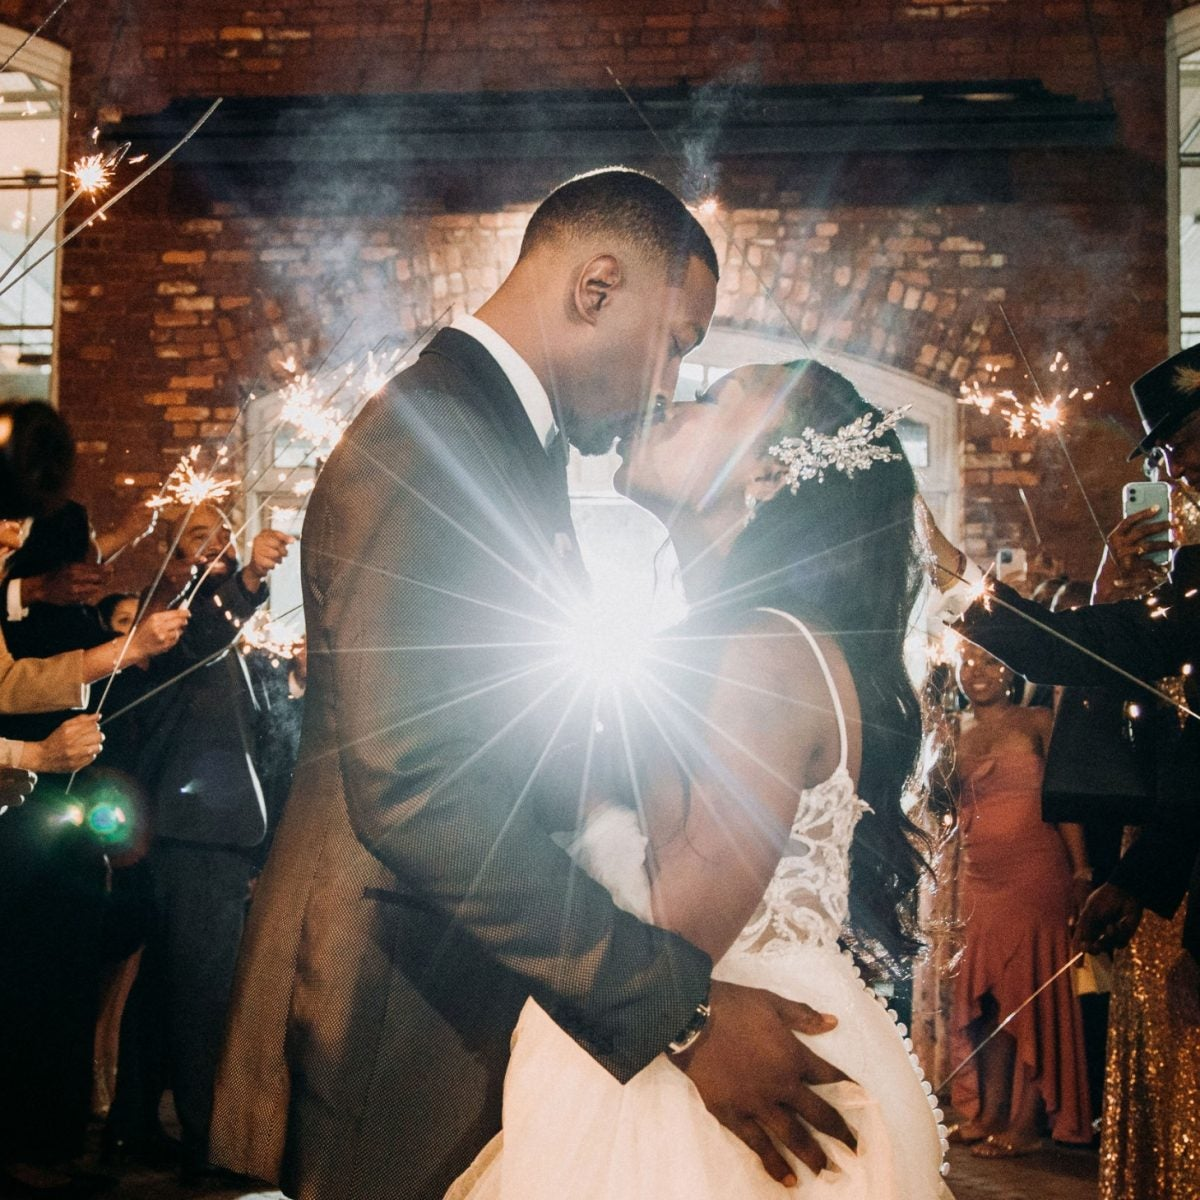 Bridal Bliss: Their First Wedding Got Canceled, So Alisha and Jordan Went All Out This Time